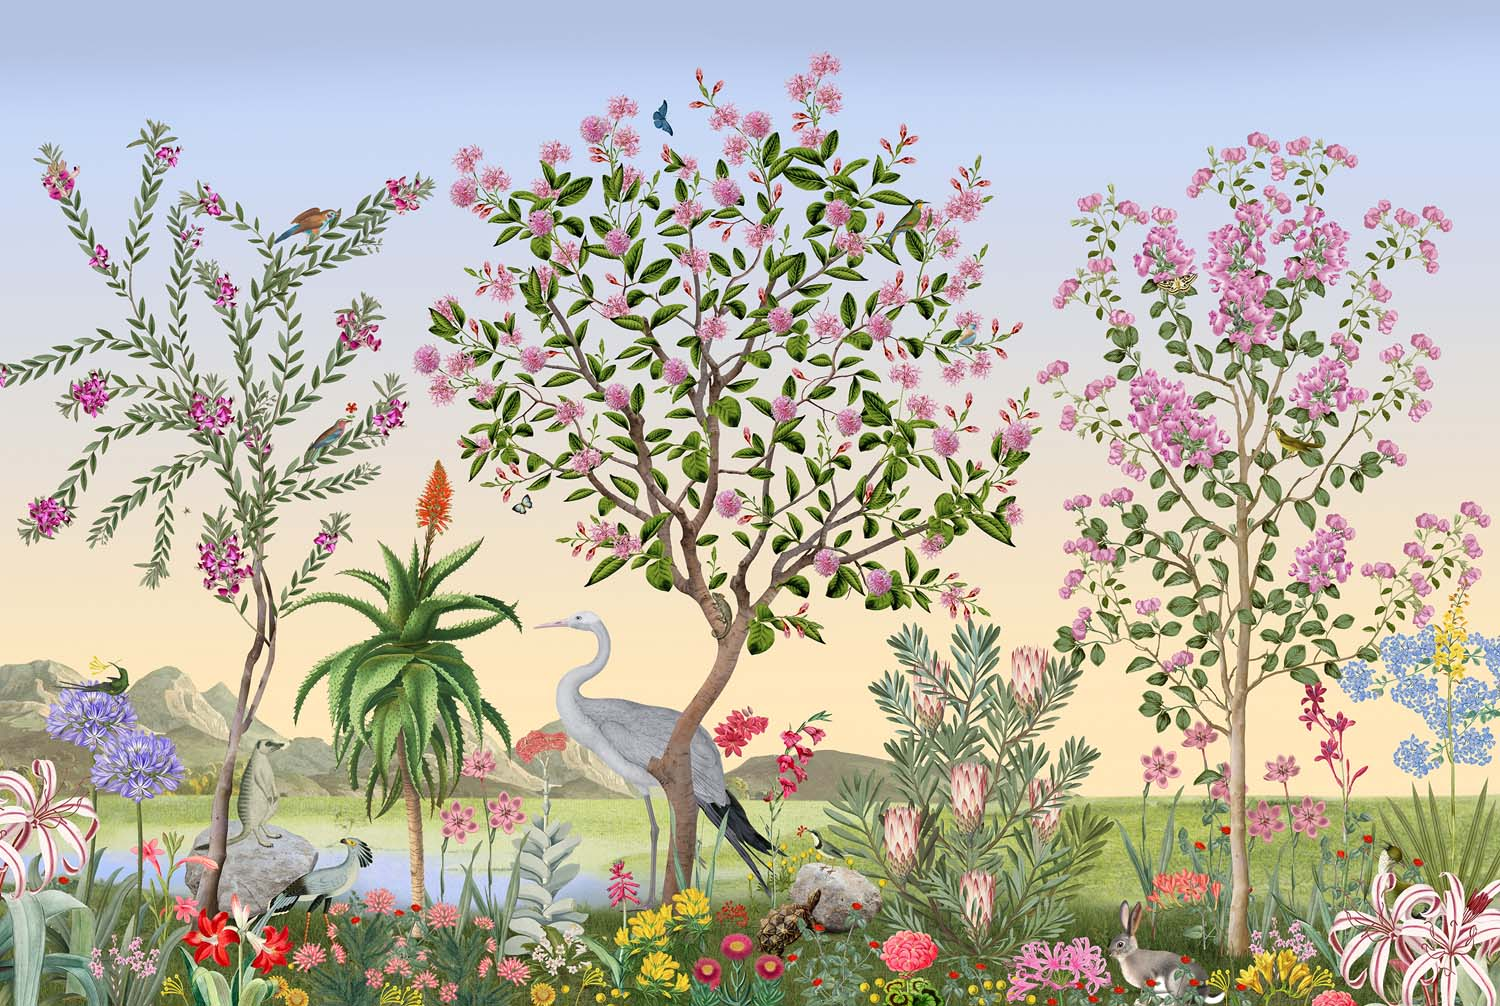 South African landscape with Pom Pom tree and Blue Crane bird